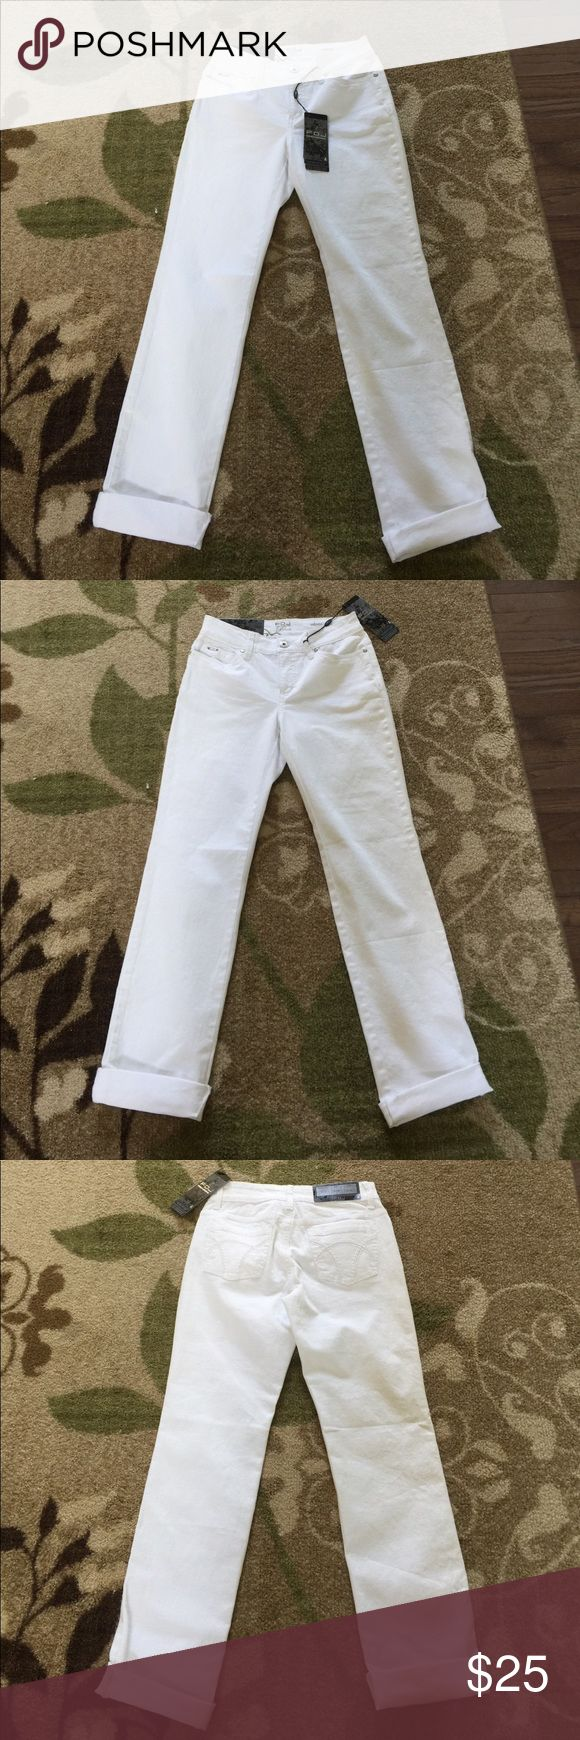 🌺 FDJ 🌺 Stunning White French Dressing Blues SZ4 🌺 FDJ 🌺 Stunning White French Dressing Blues SZ4 Olivia Straight Leg #2060319 never worn tags still.  Inseam is a 34 inches and Rise is 9.5 inches. FDJ Jeans Straight Leg